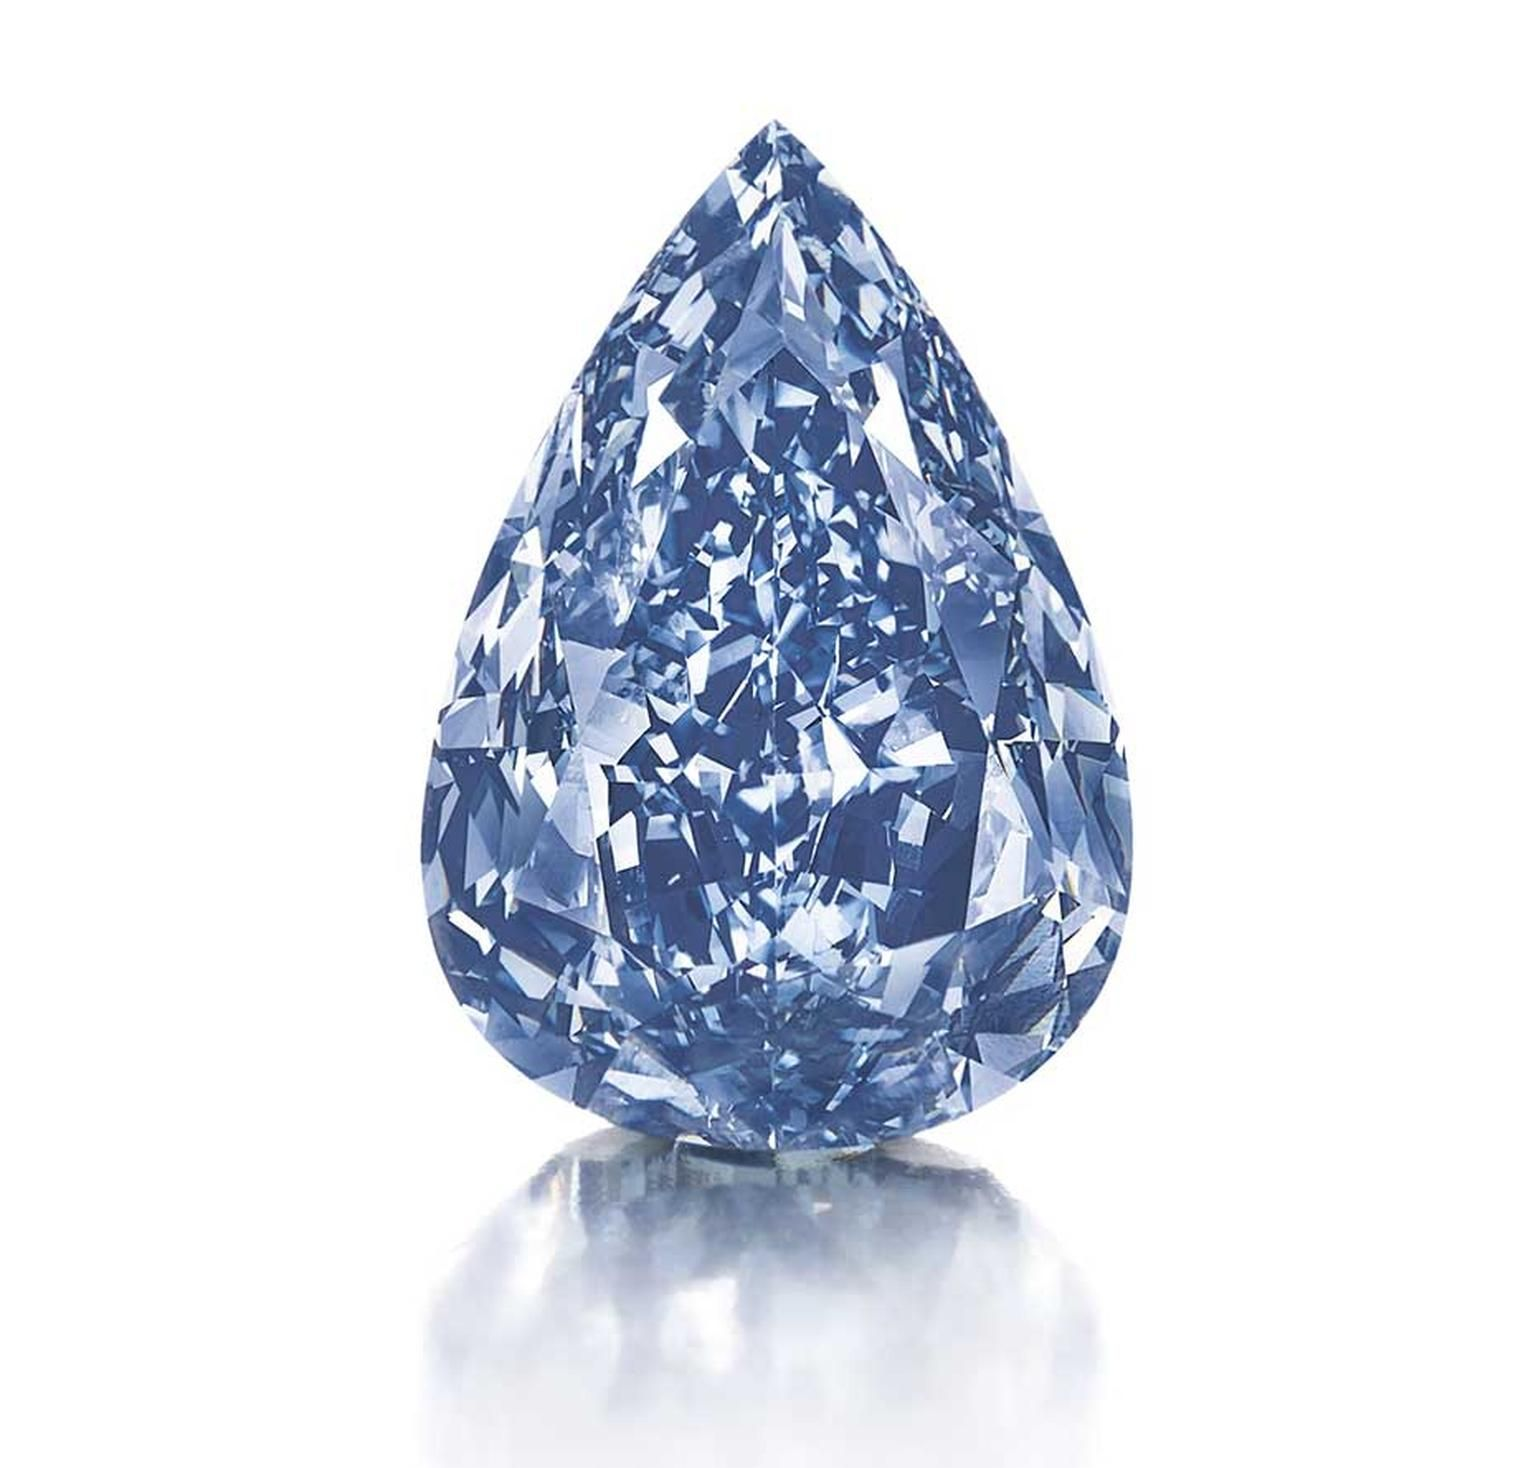 WinstonBlue Harry Winston bought the 13.22 carat blue diamond at Christie's auction in Geneva in May this year for a cool $24 million